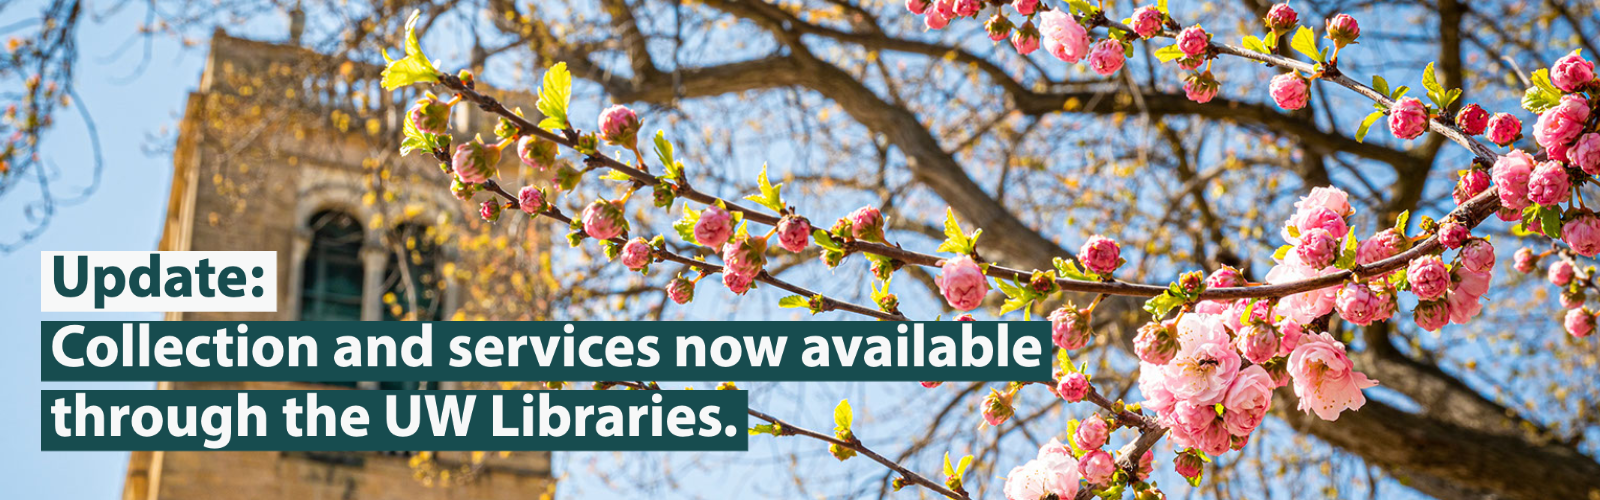 Update: Collections and services now available through the UW Libraries.